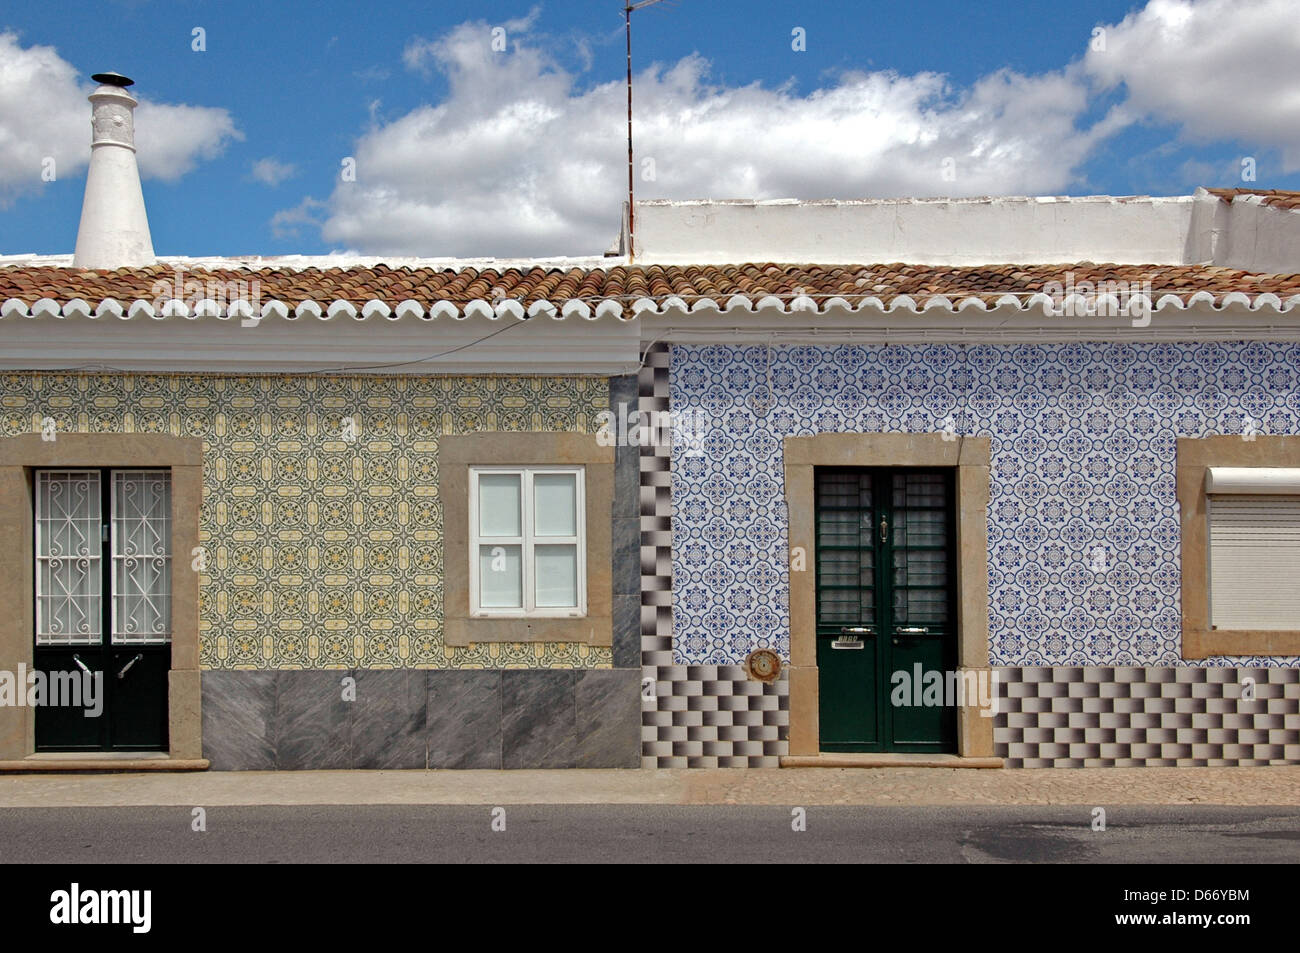 Painted tin-glazed ceramic Azulejos tiles decorating houses in a ...